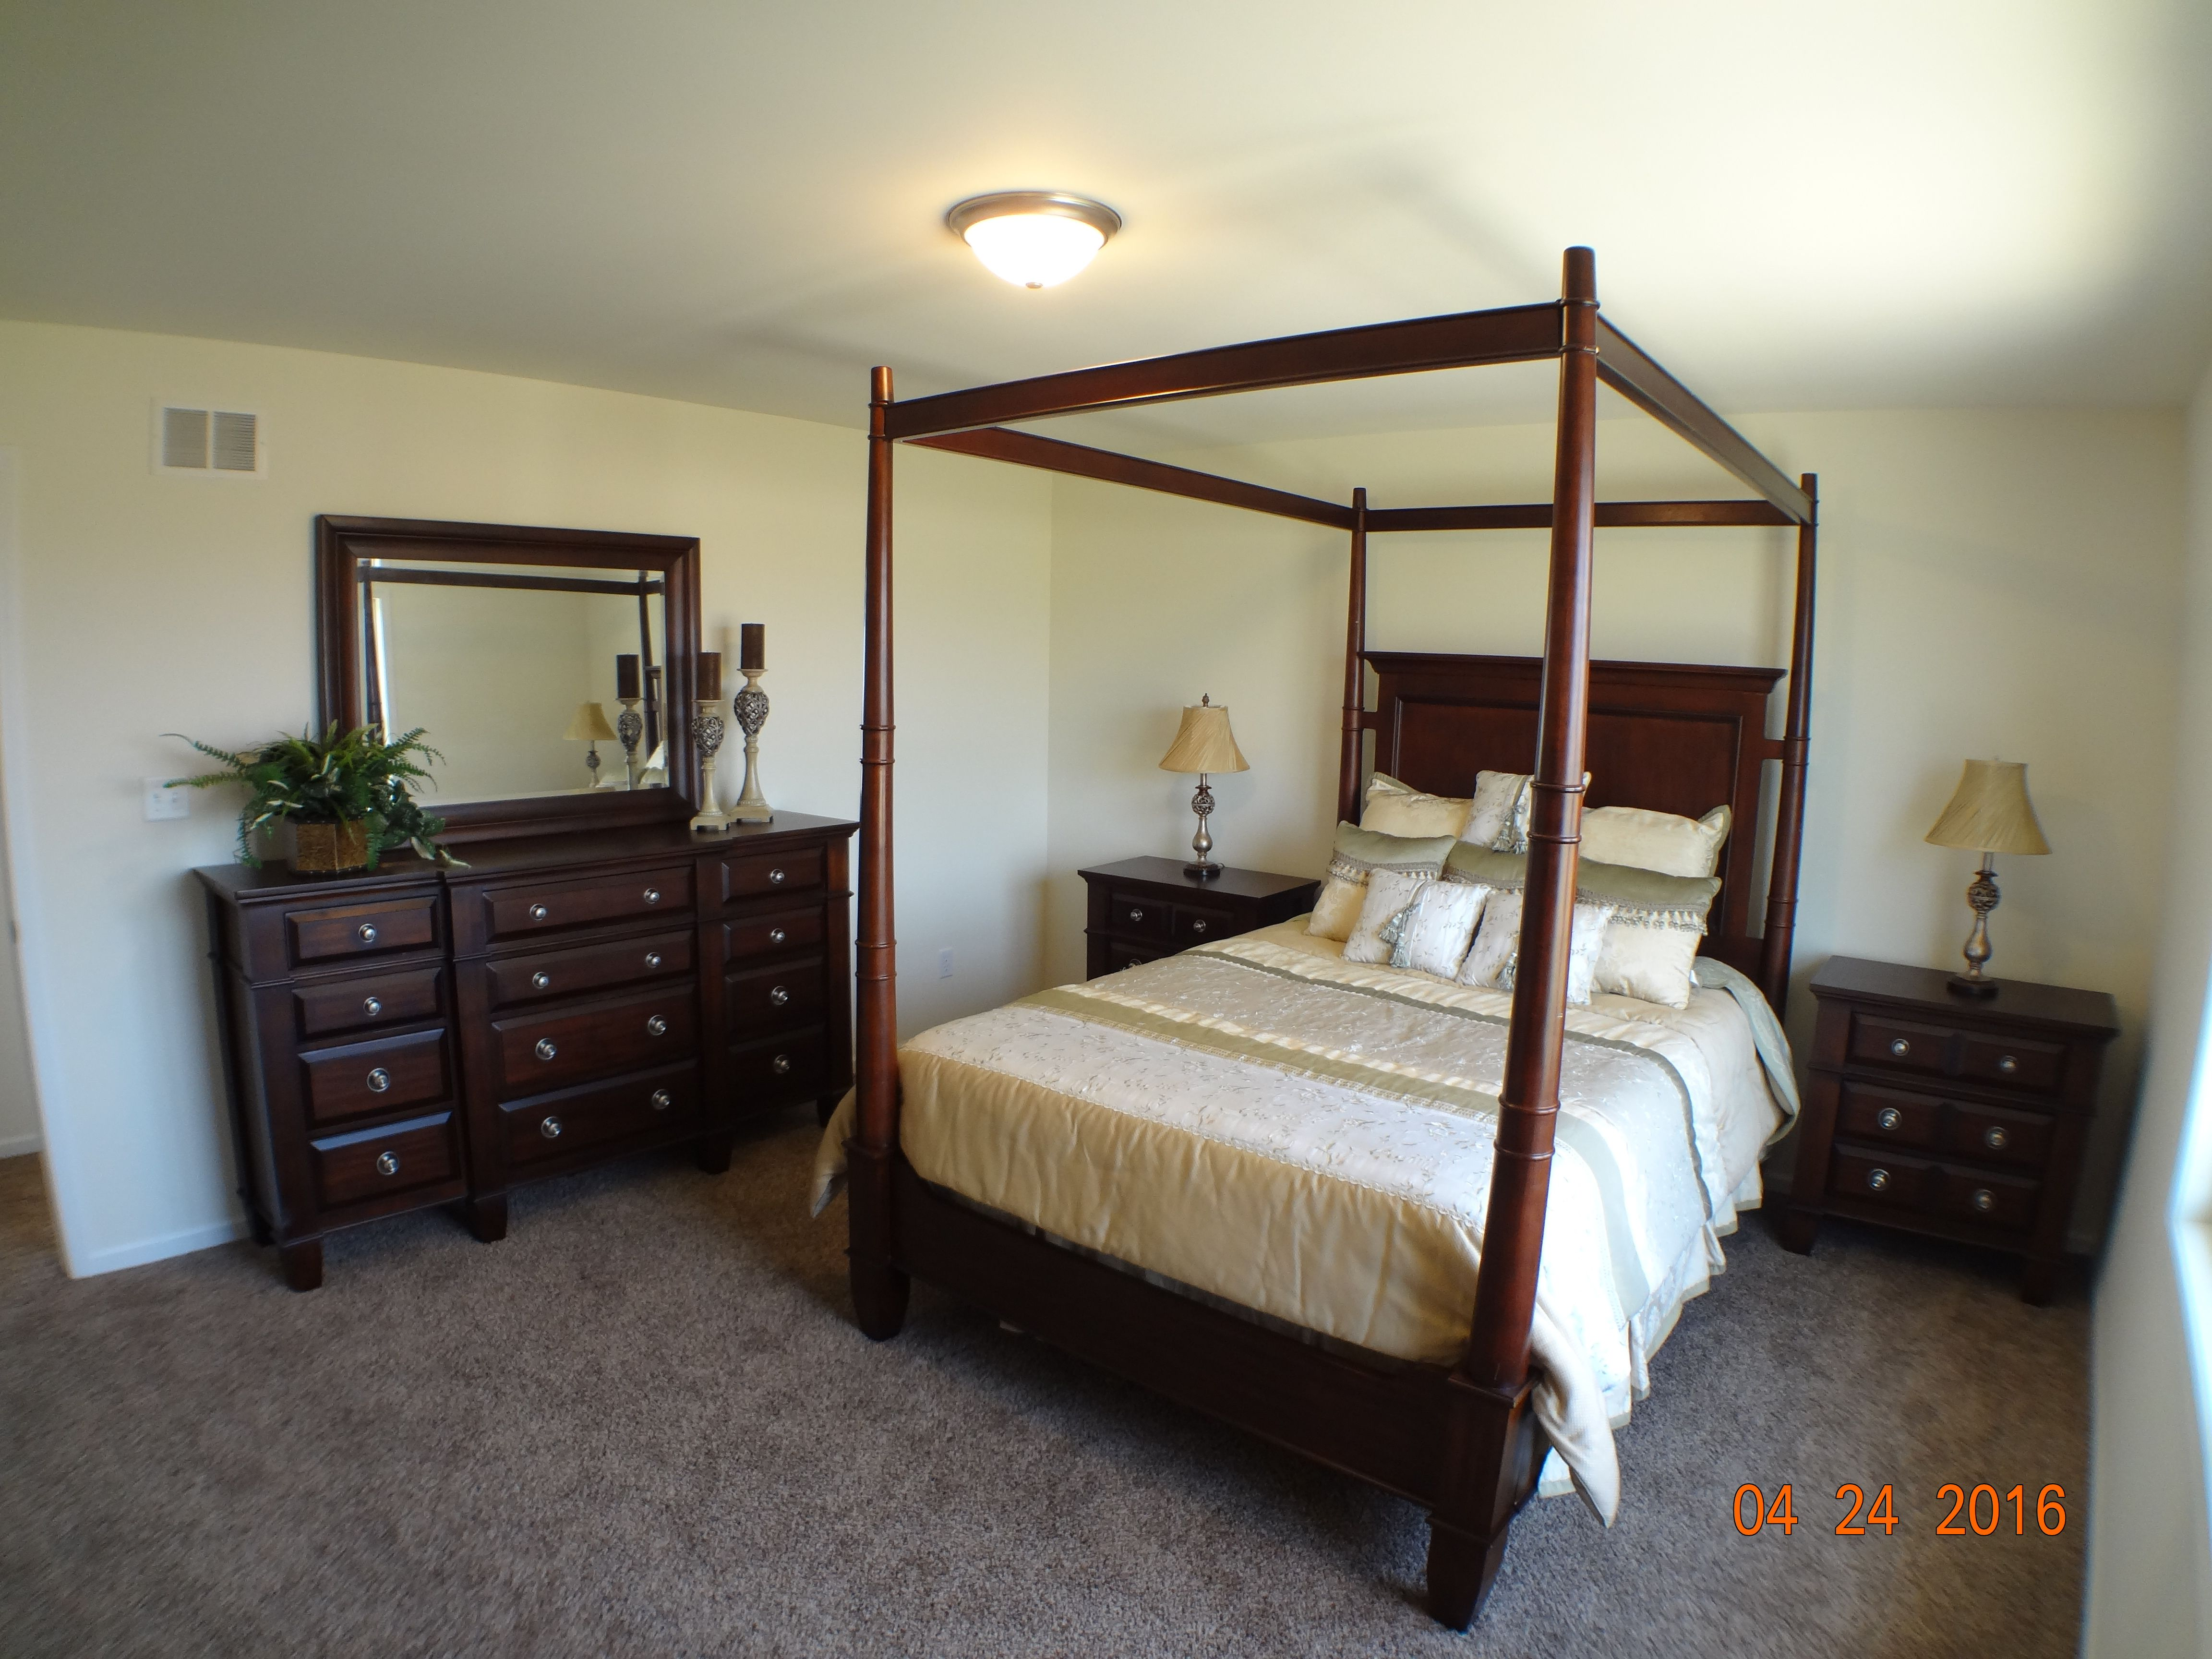 Bedroom featured in the Auburn II By Accent Homes Inc. in Gary, IN